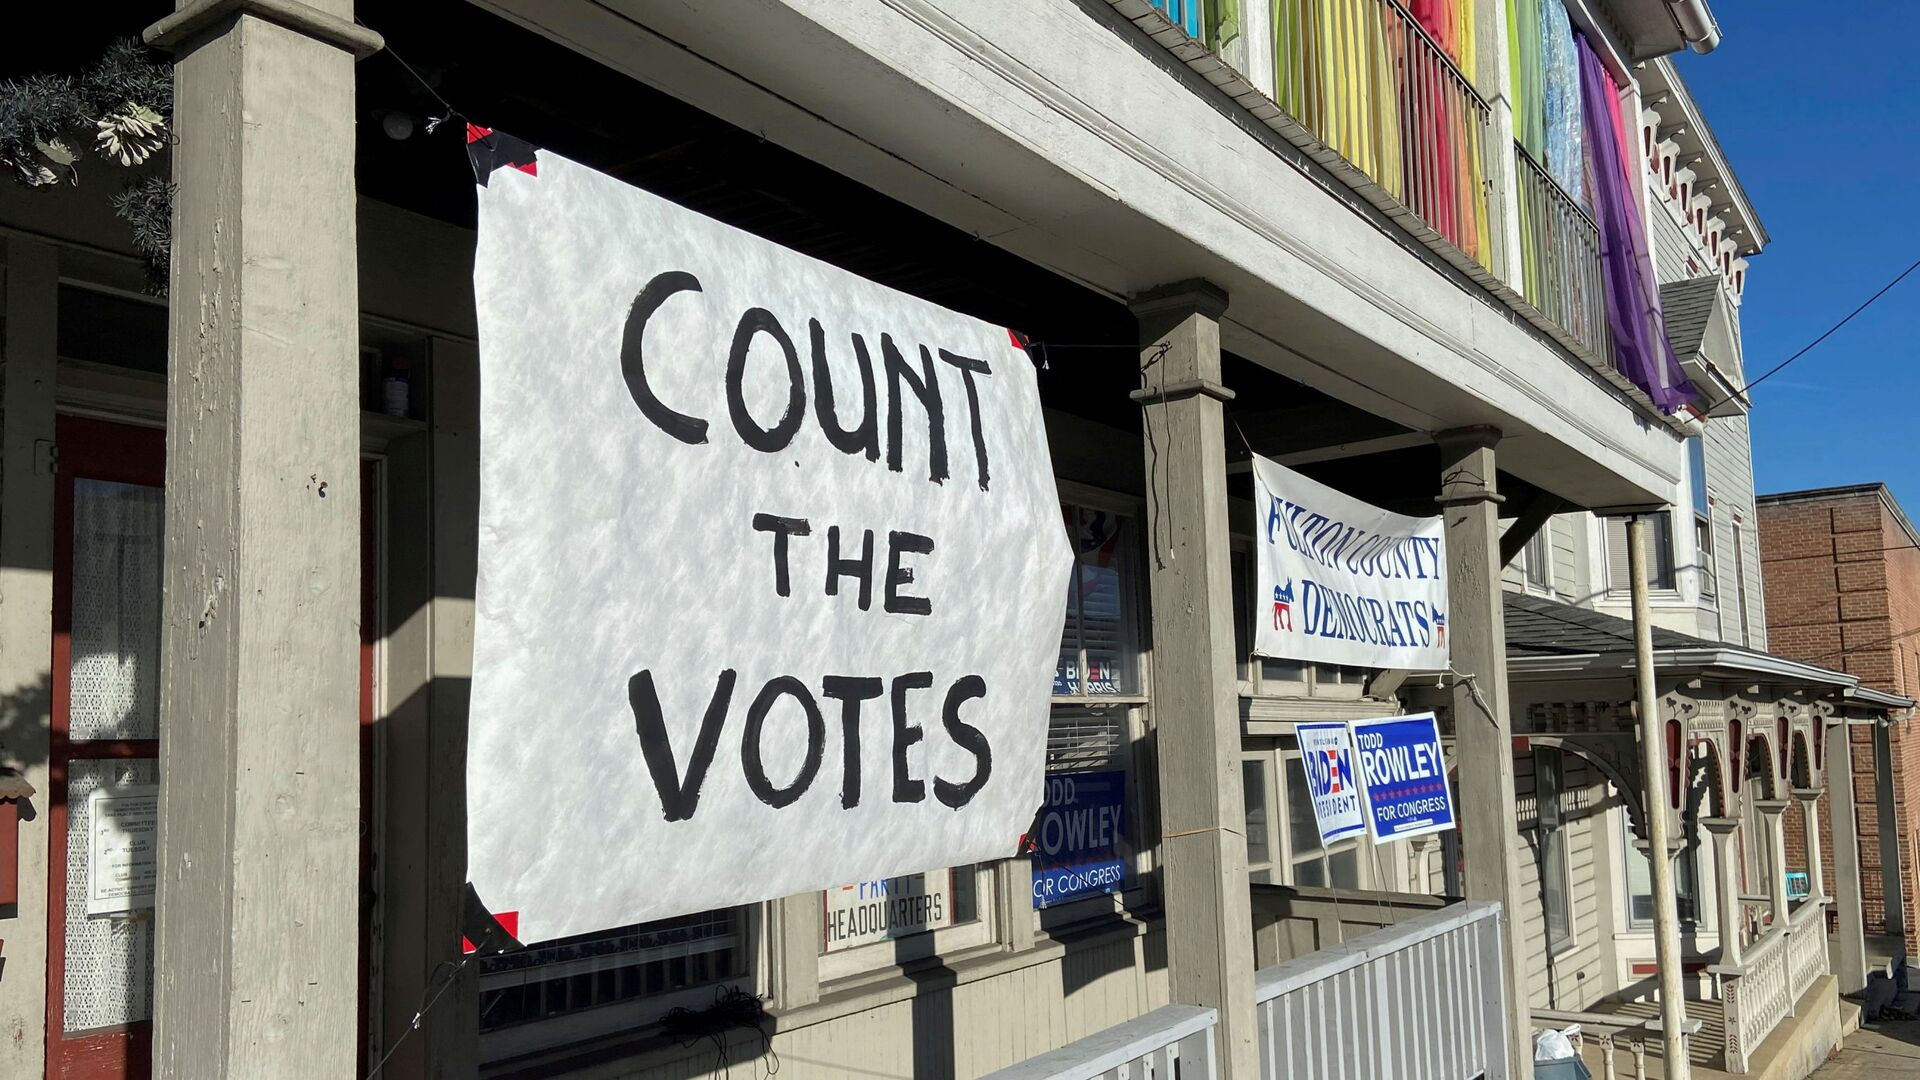 A sign urging people to vote is seen on the porch of the Democratic Party's Fulton County headquarters on Election Day in McConnellsburg, Pennsylvania November 3, 2020. Picture taken November 3, 2020. - Sputnik International, 1920, 01.08.2021